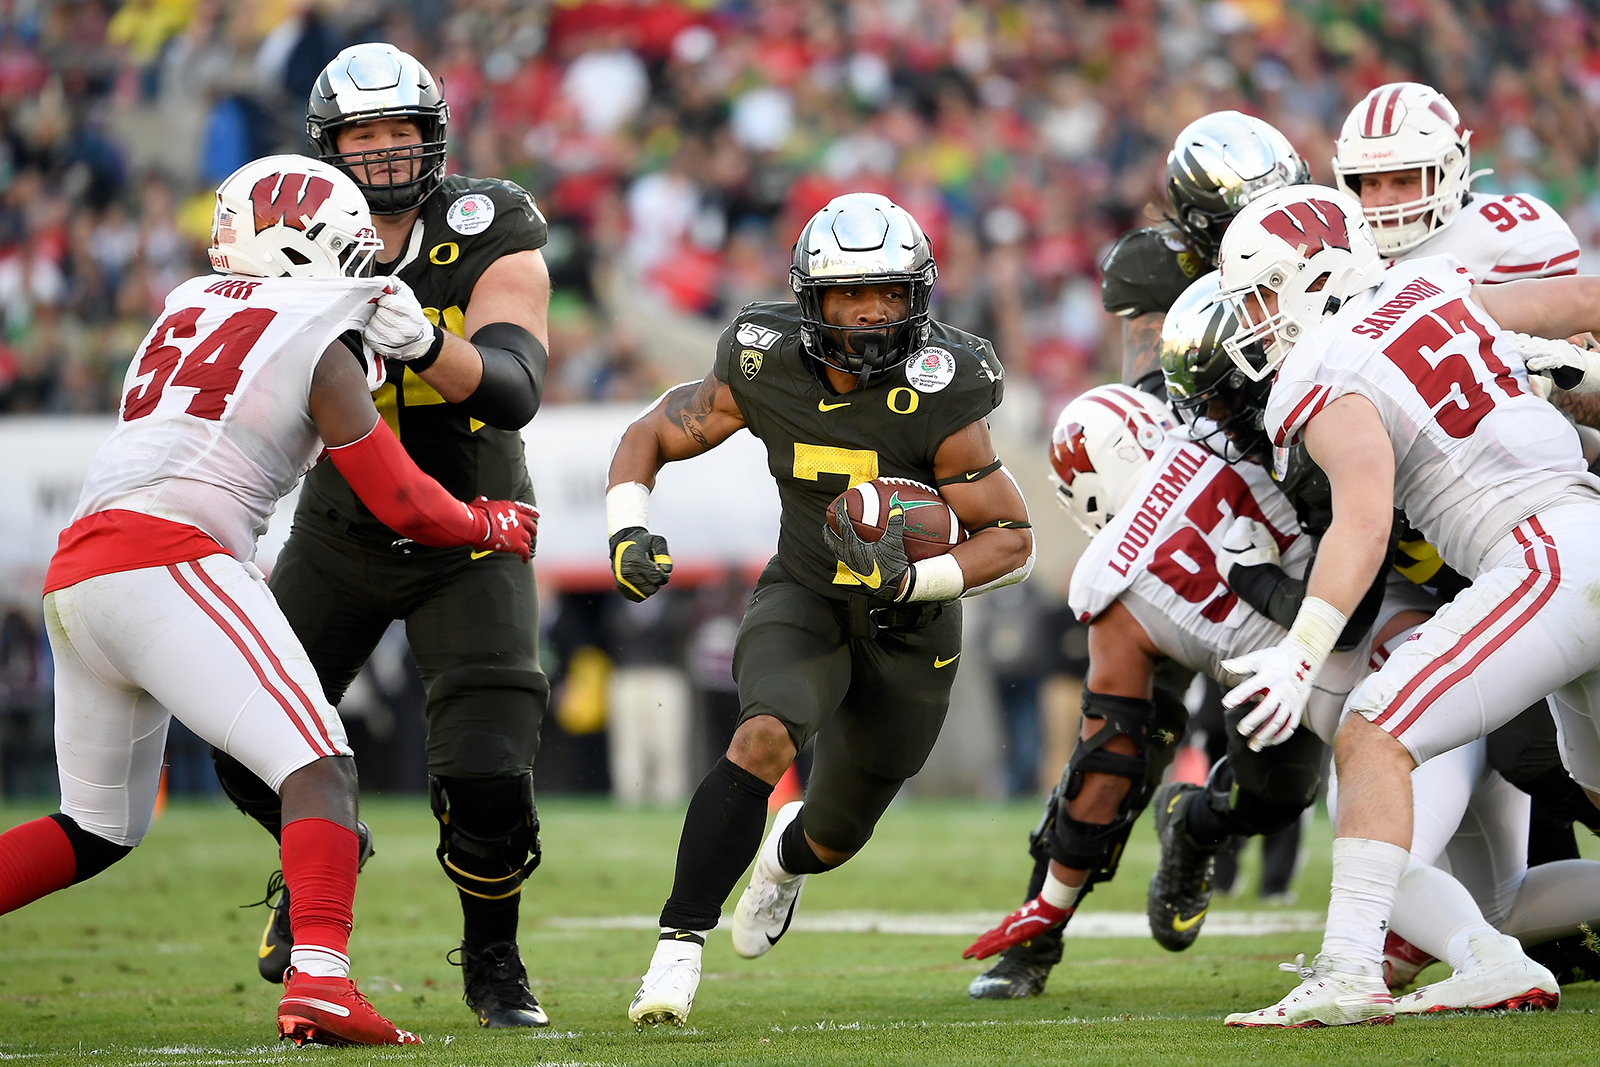 College football's 'Power Five' leaders are discussing postponing season amid coronavirus concerns, reports say